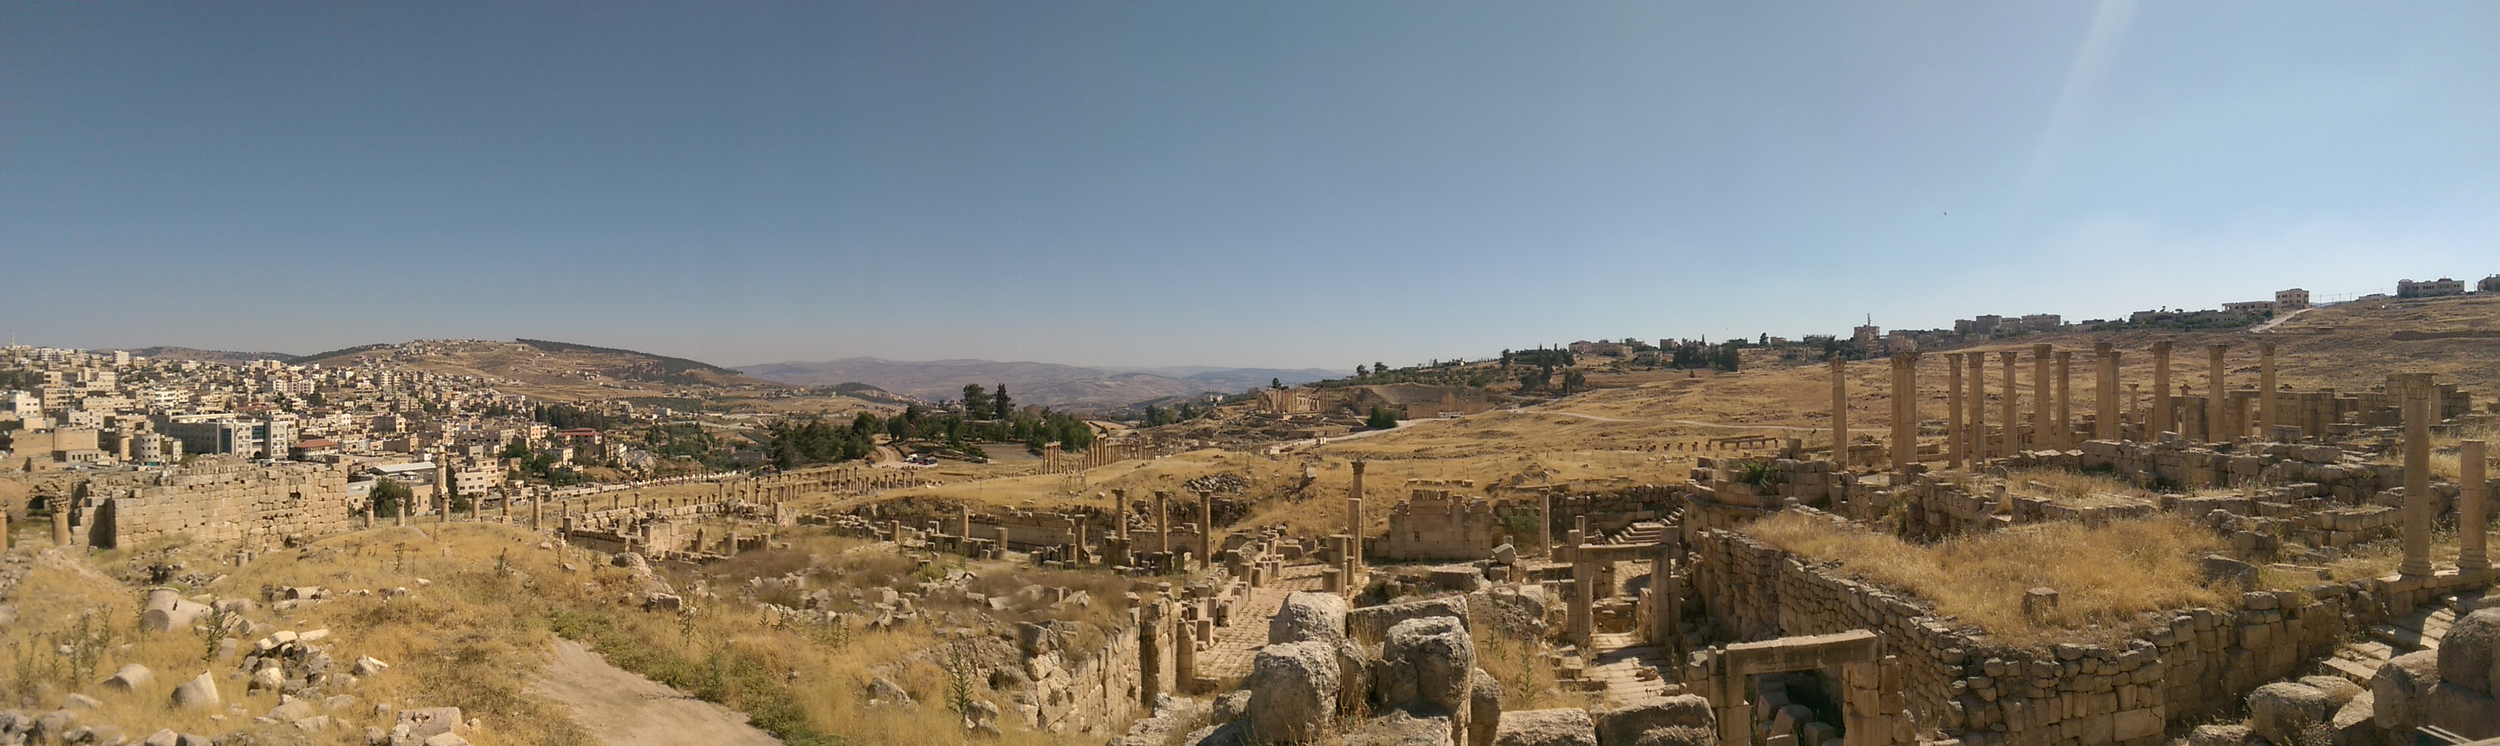 The archaeological wonders of Jerash.